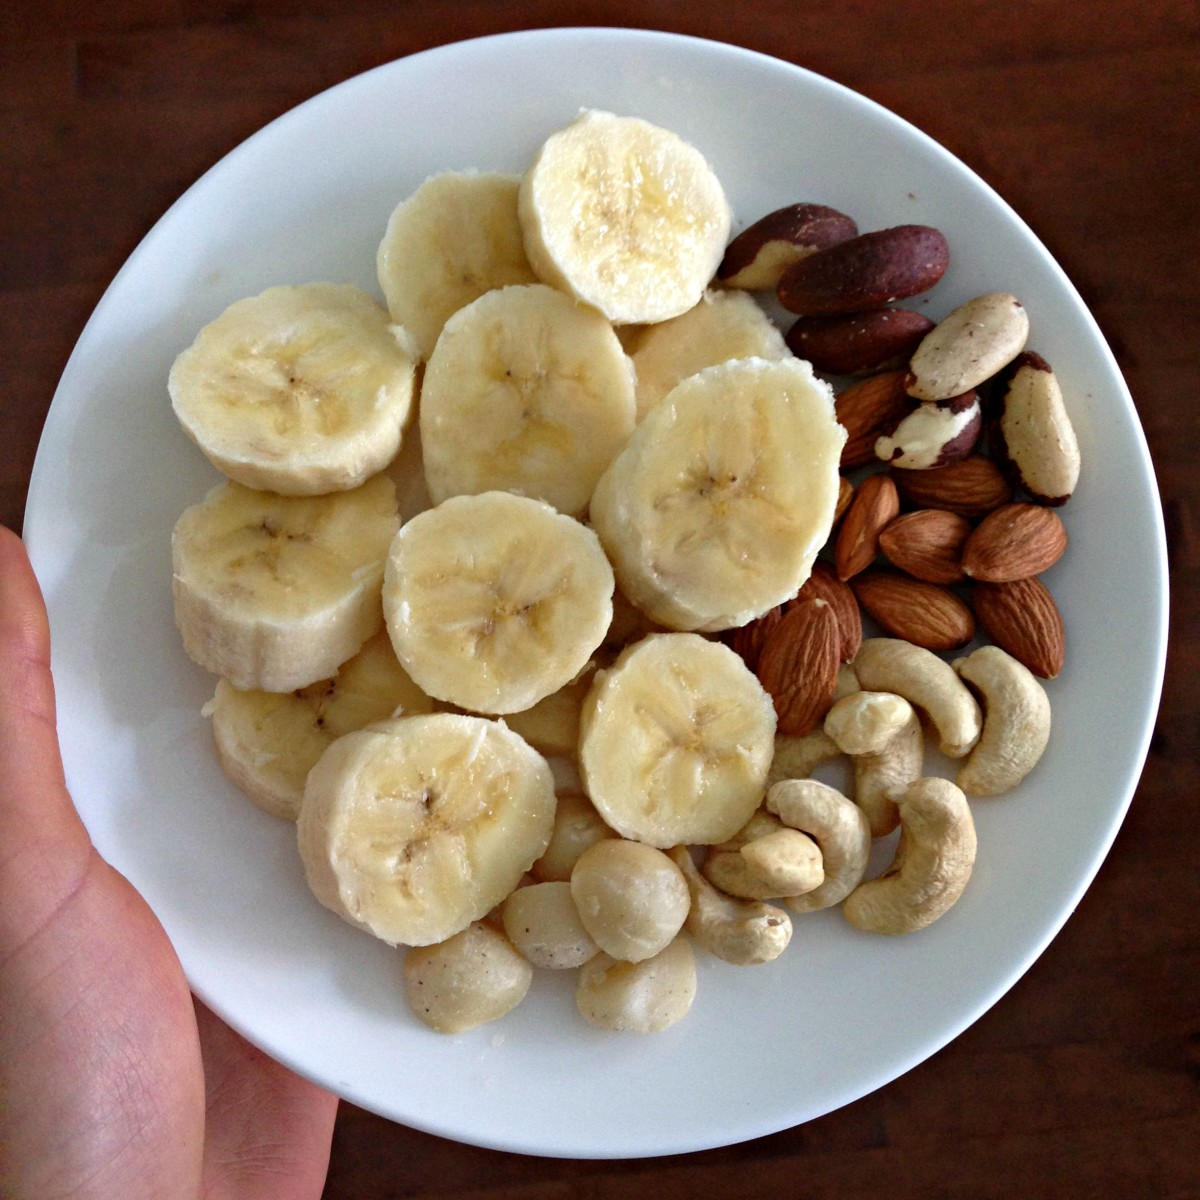 Banana-and-nuts